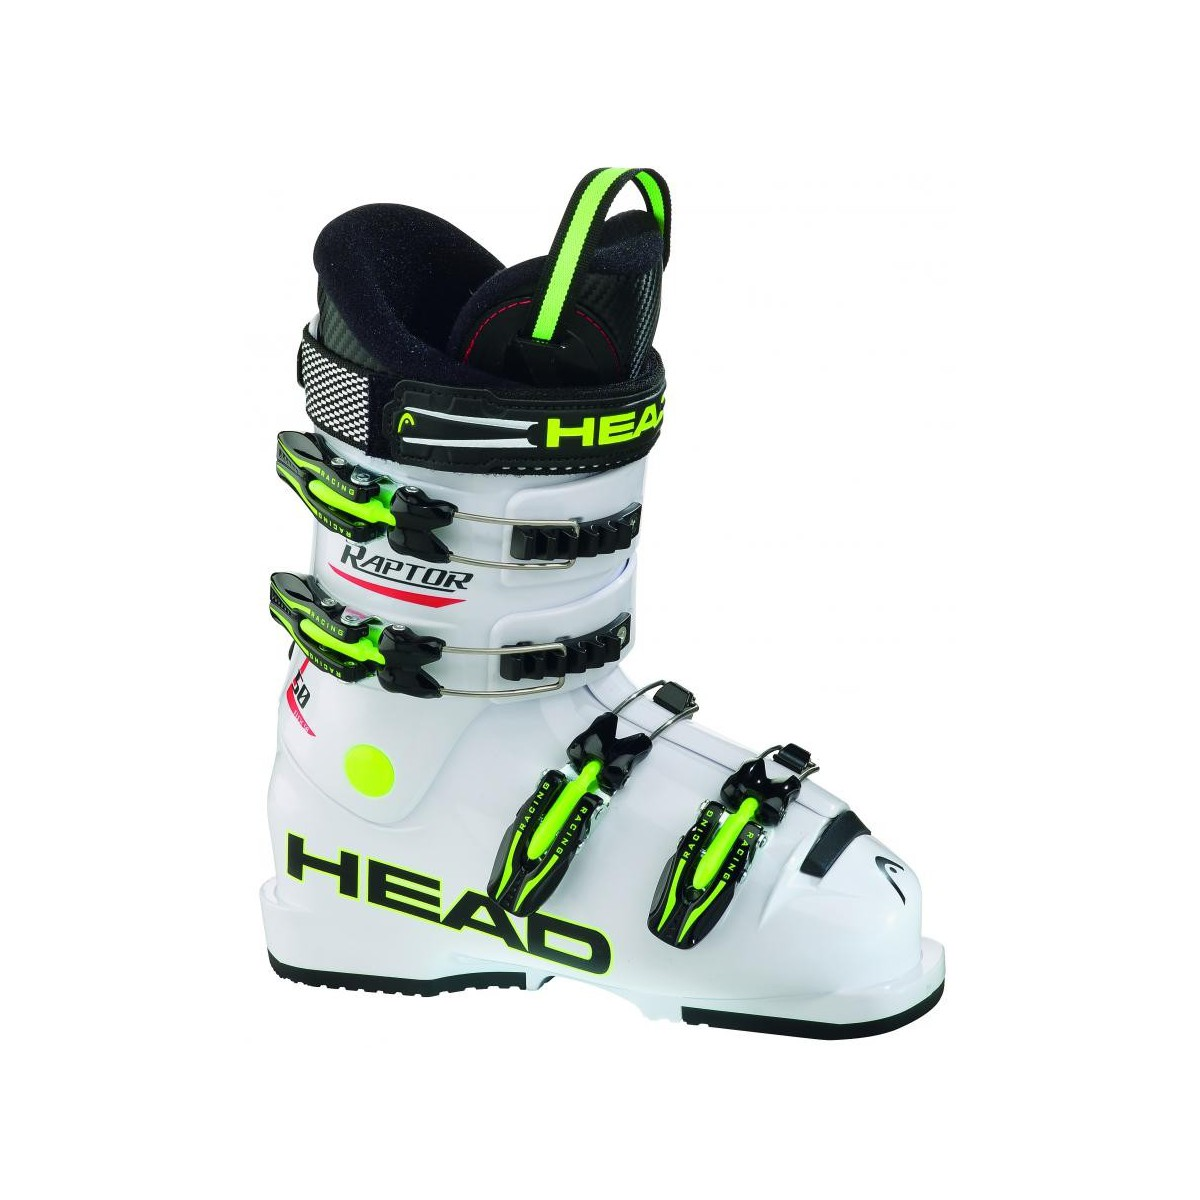 chaussures de ski tecnica rival x7. Black Bedroom Furniture Sets. Home Design Ideas